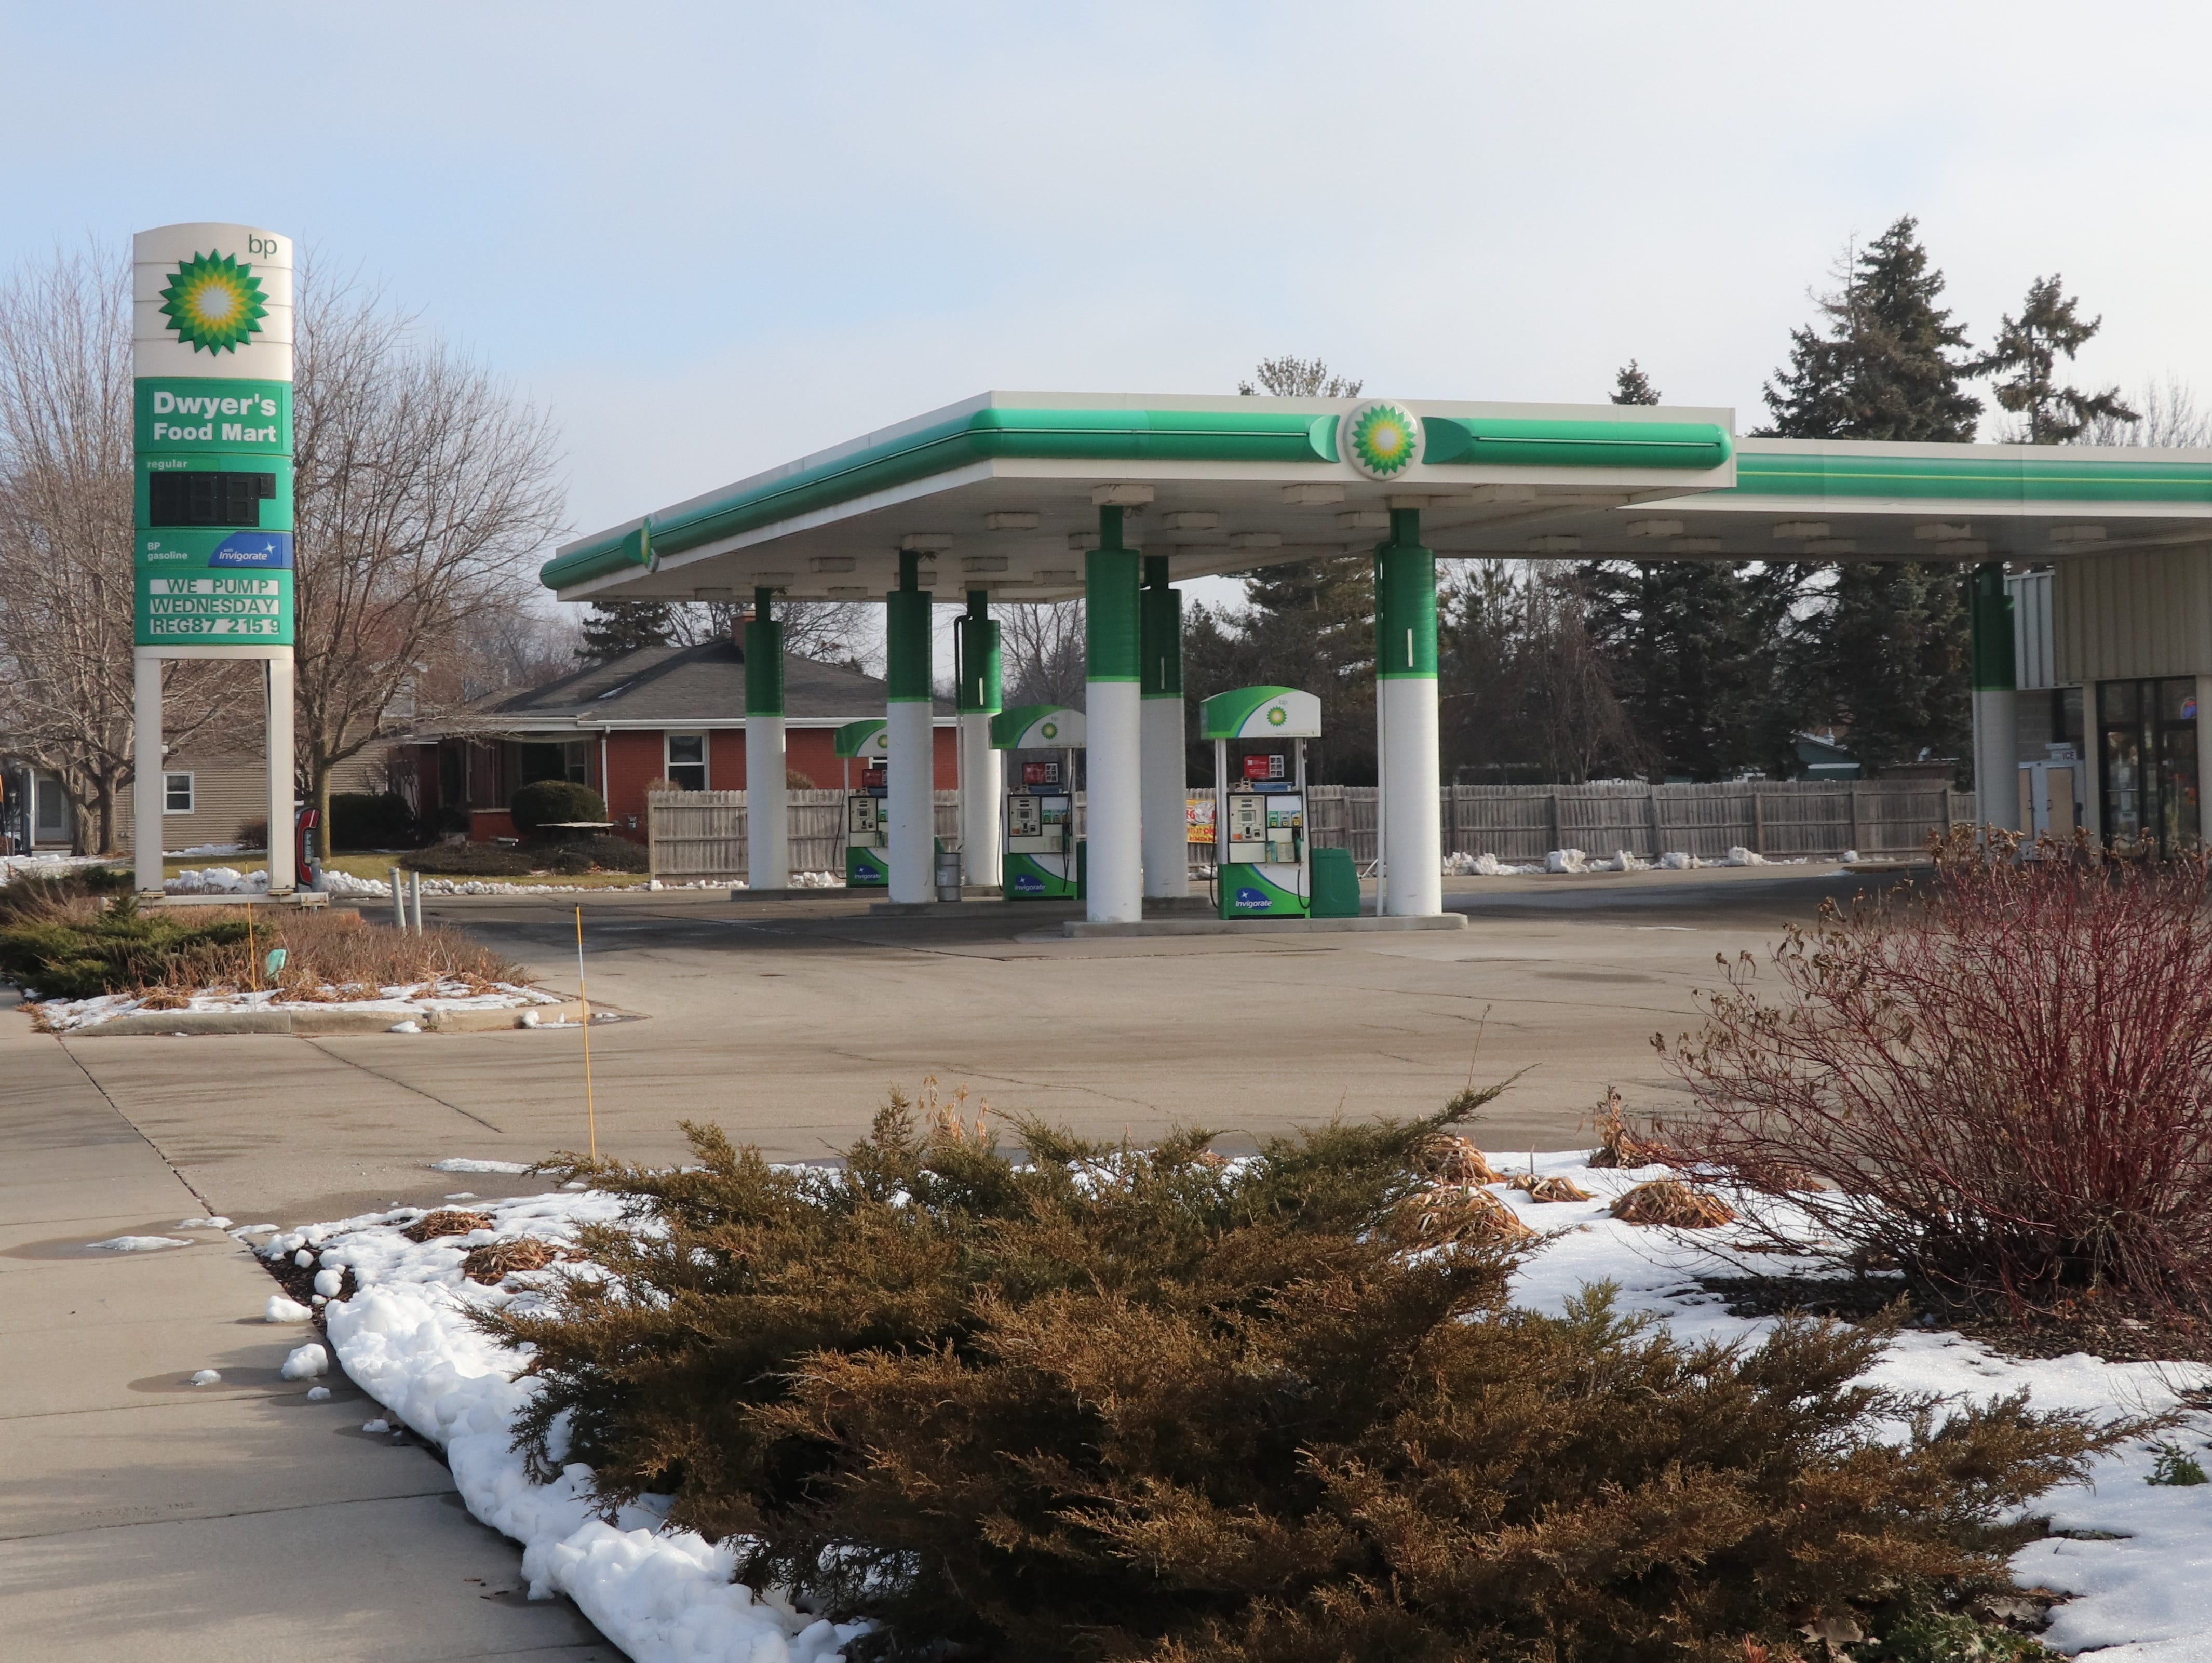 Gasoline prices must be posted in conspicuous place, but not necessarily on a roadside sign